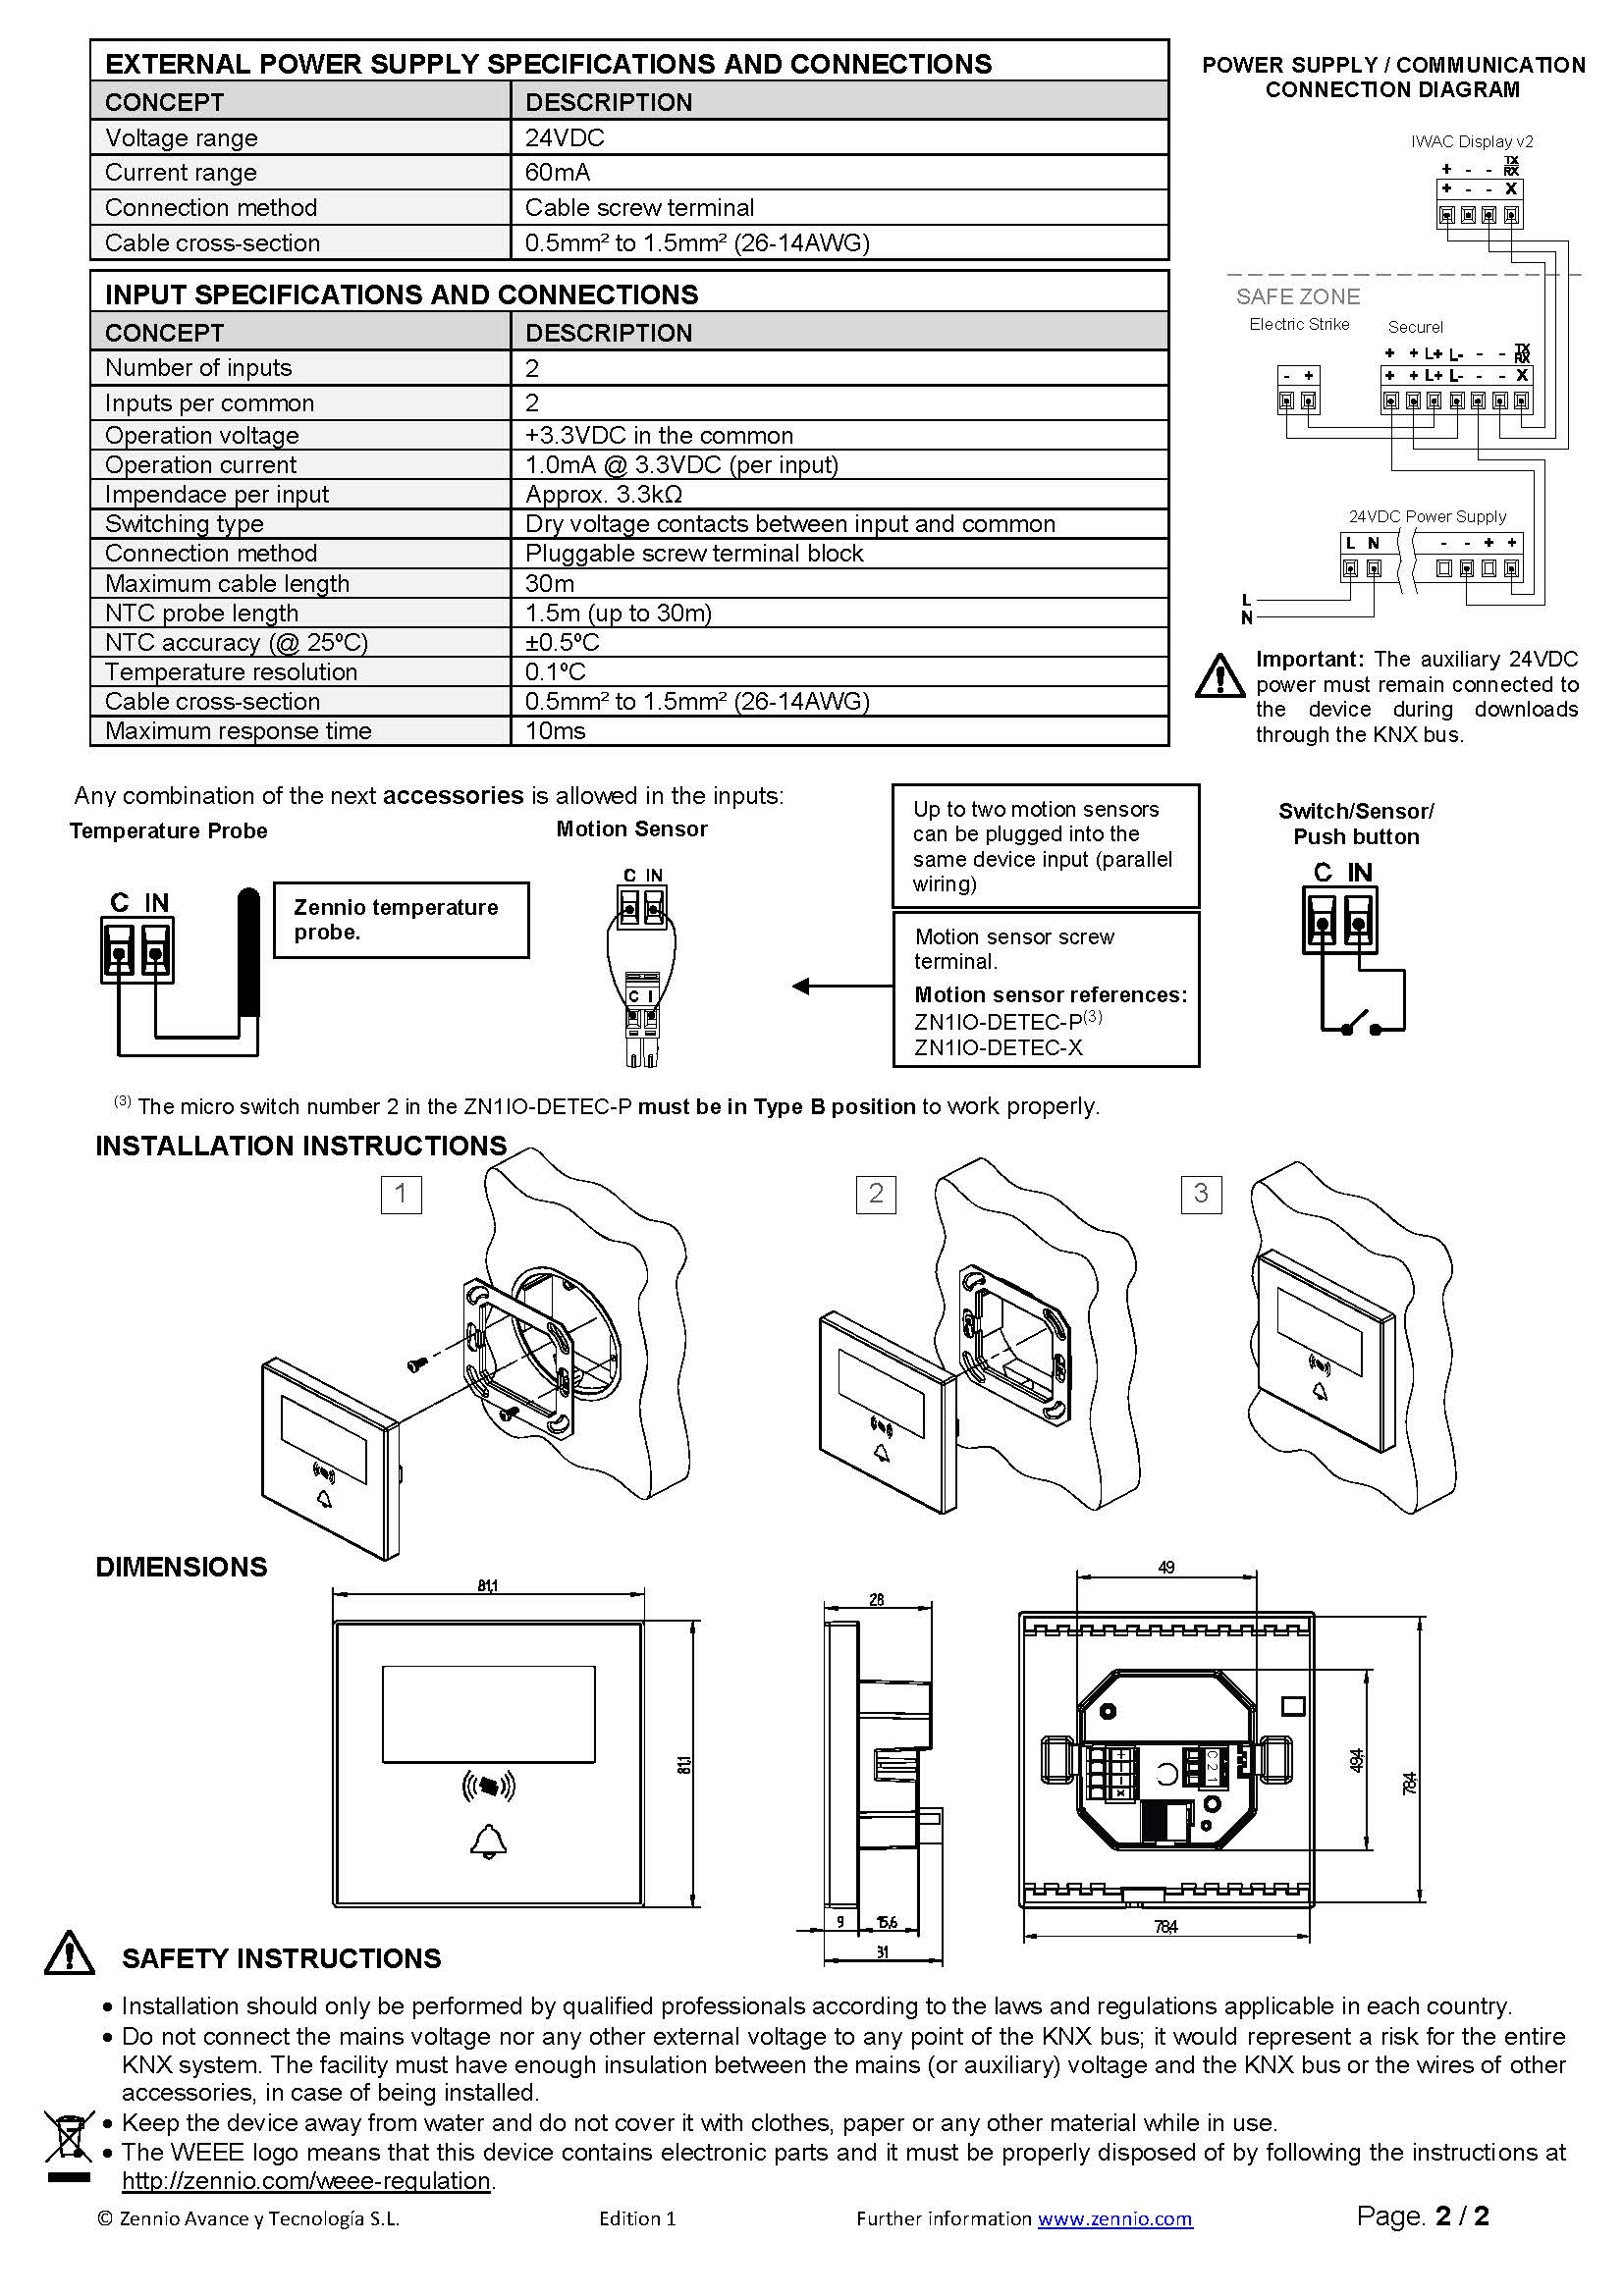 Datasheet IWAC Display v2 EN Ed1 Страница 2